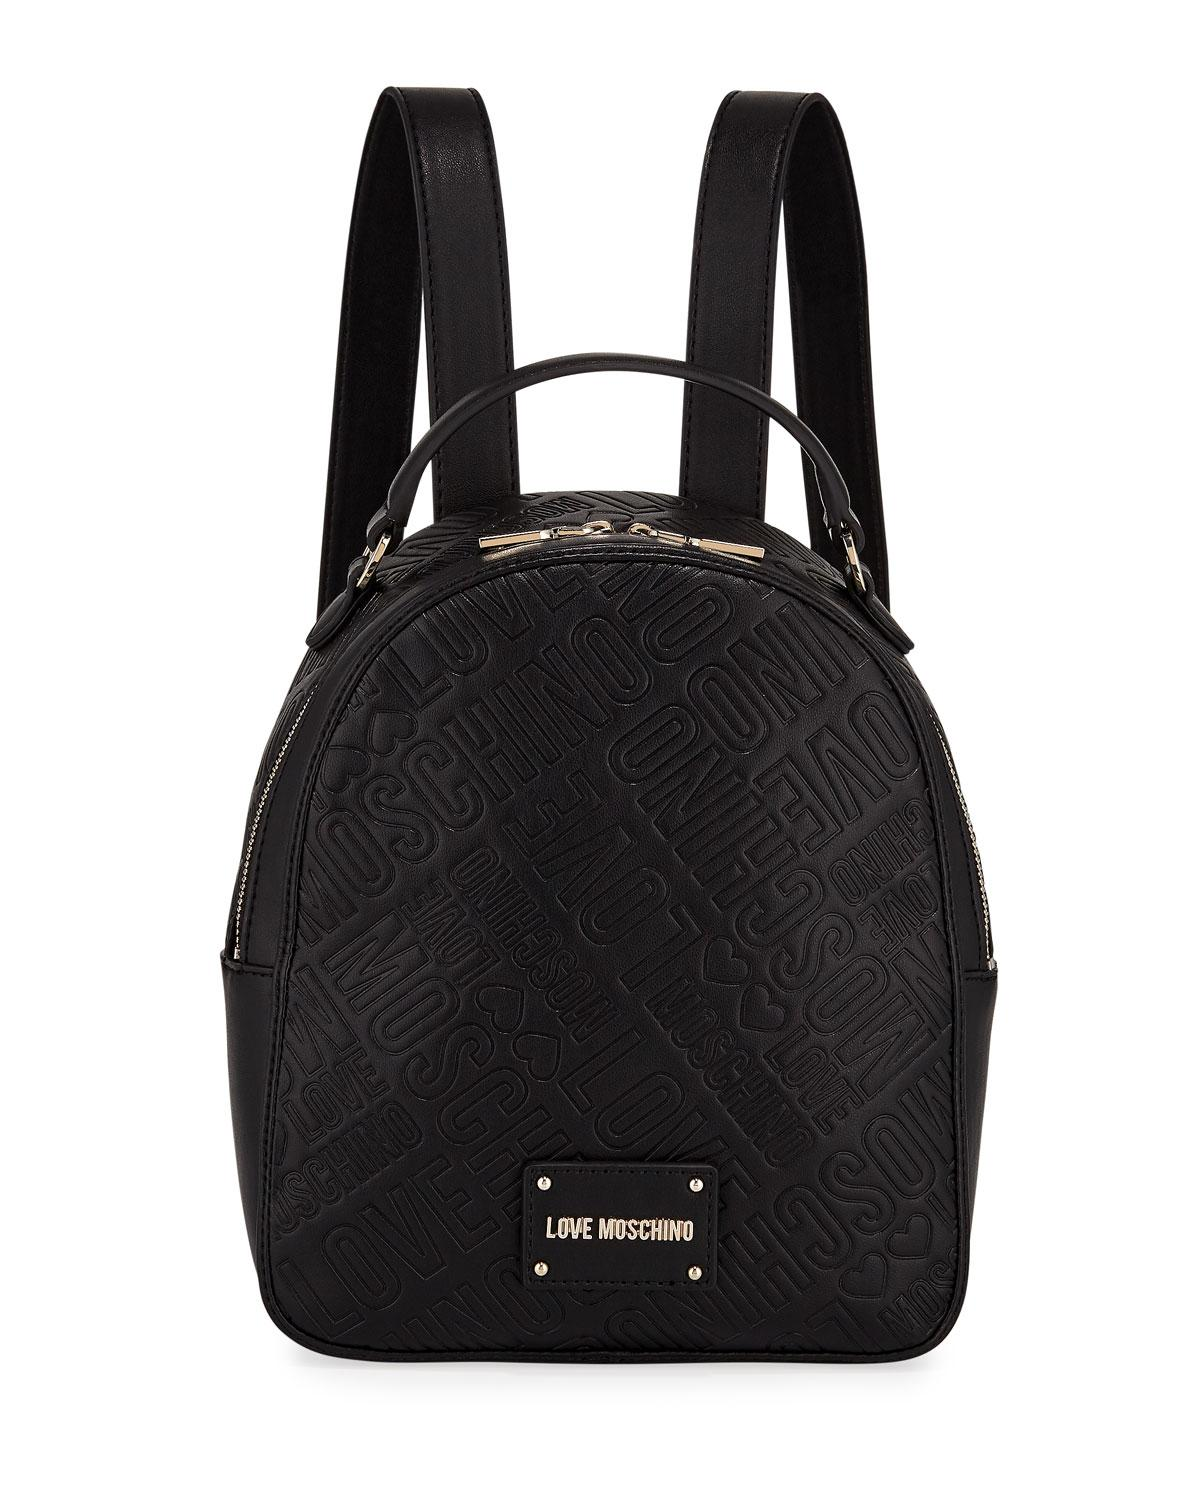 3a82618998367 Love Moschino - Black Embossed Logo Medium Backpack - Lyst. View fullscreen